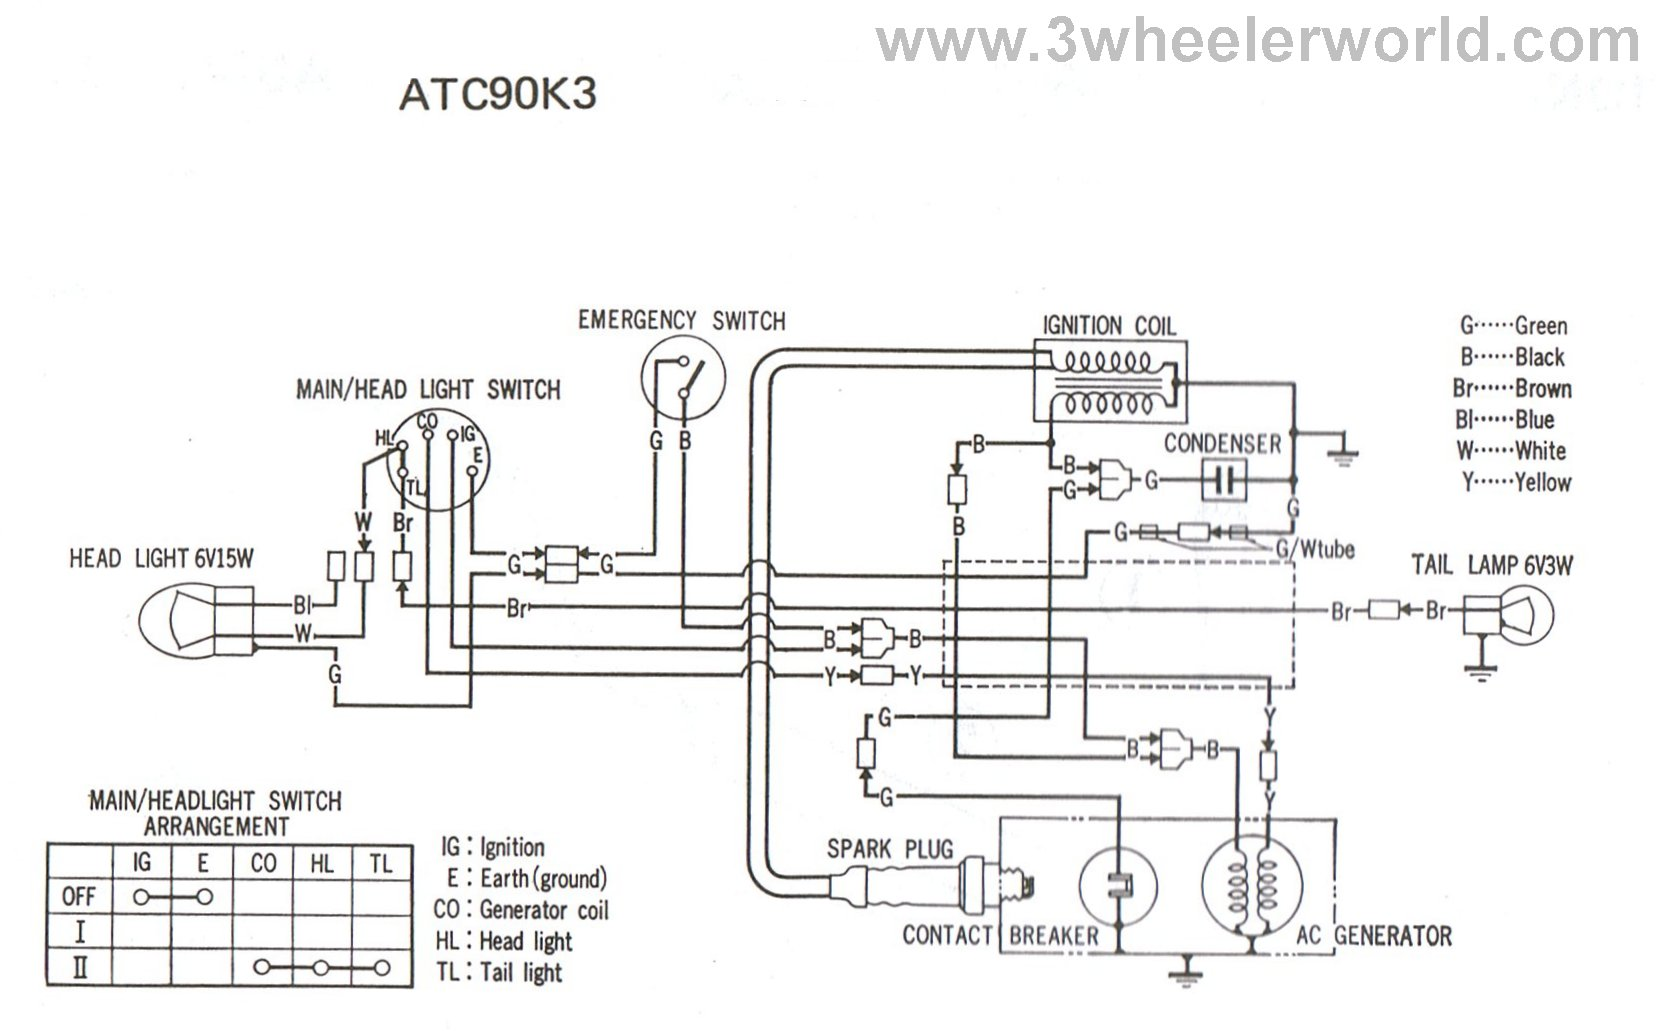 ATC90K3HM 3 wheeler world tech help honda wiring diagrams 1995 honda fourtrax 300 wiring diagram at readyjetset.co